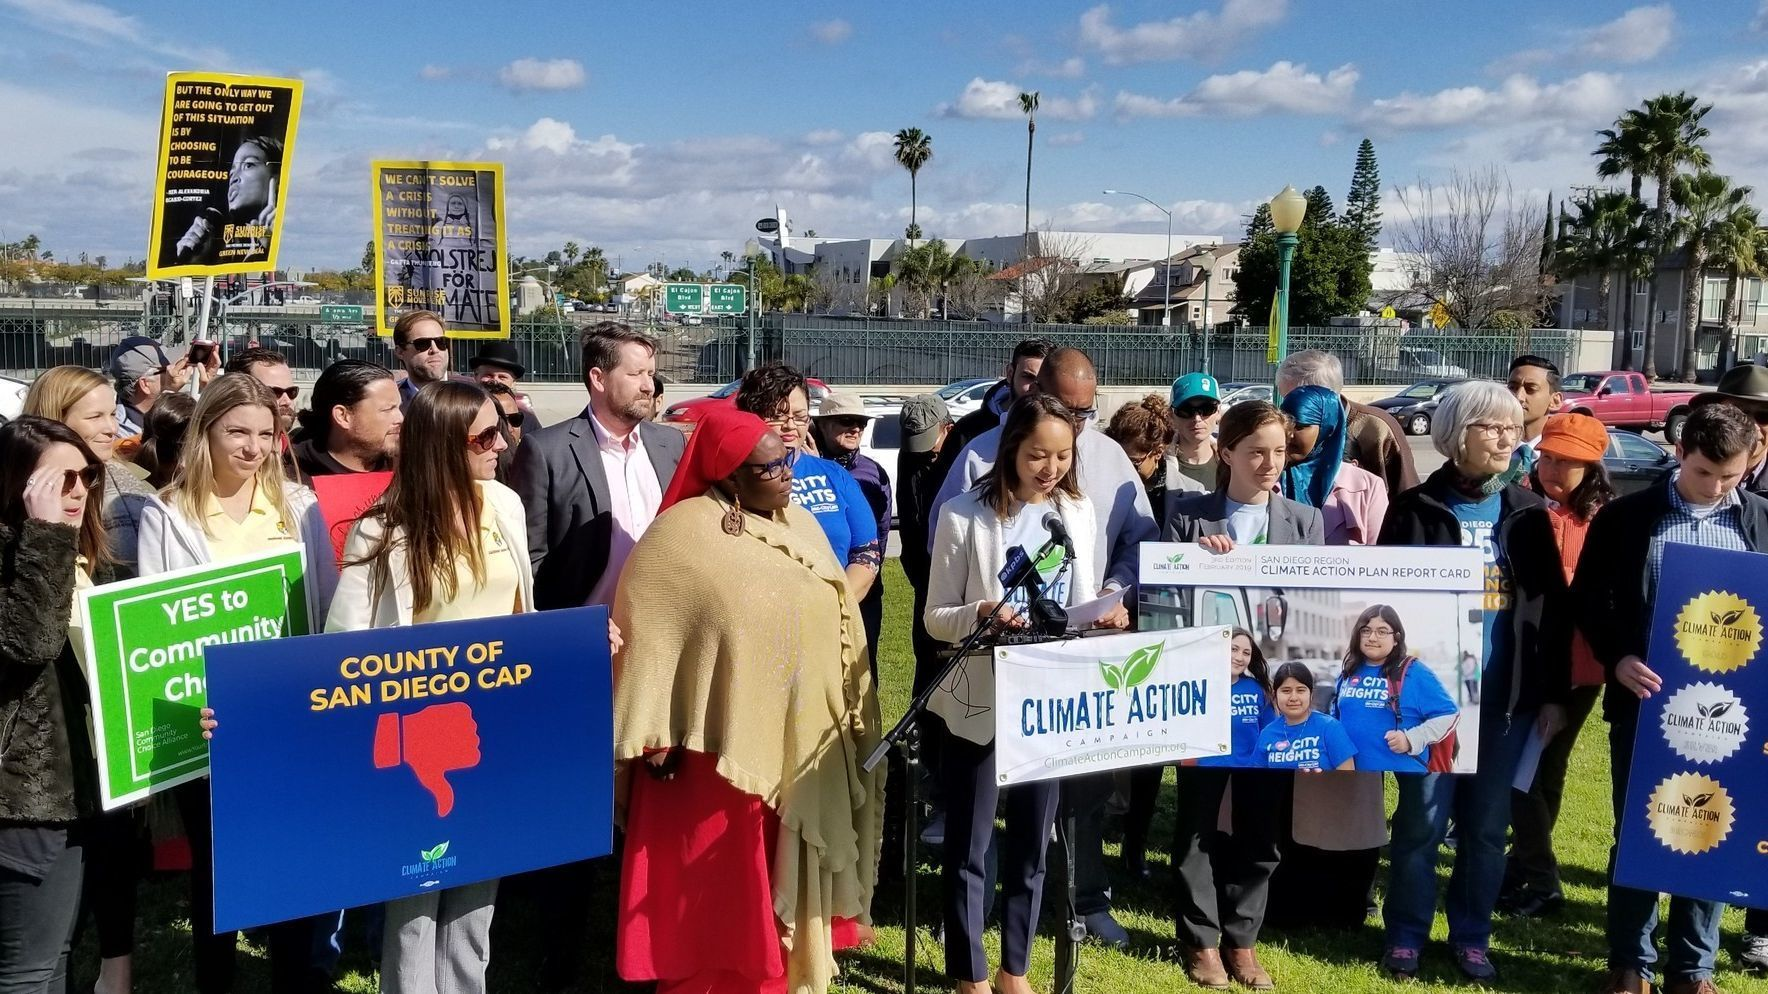 Climate activists call for San Diego Green New Deal, criticizing cities for not following through on climate-plan pledges